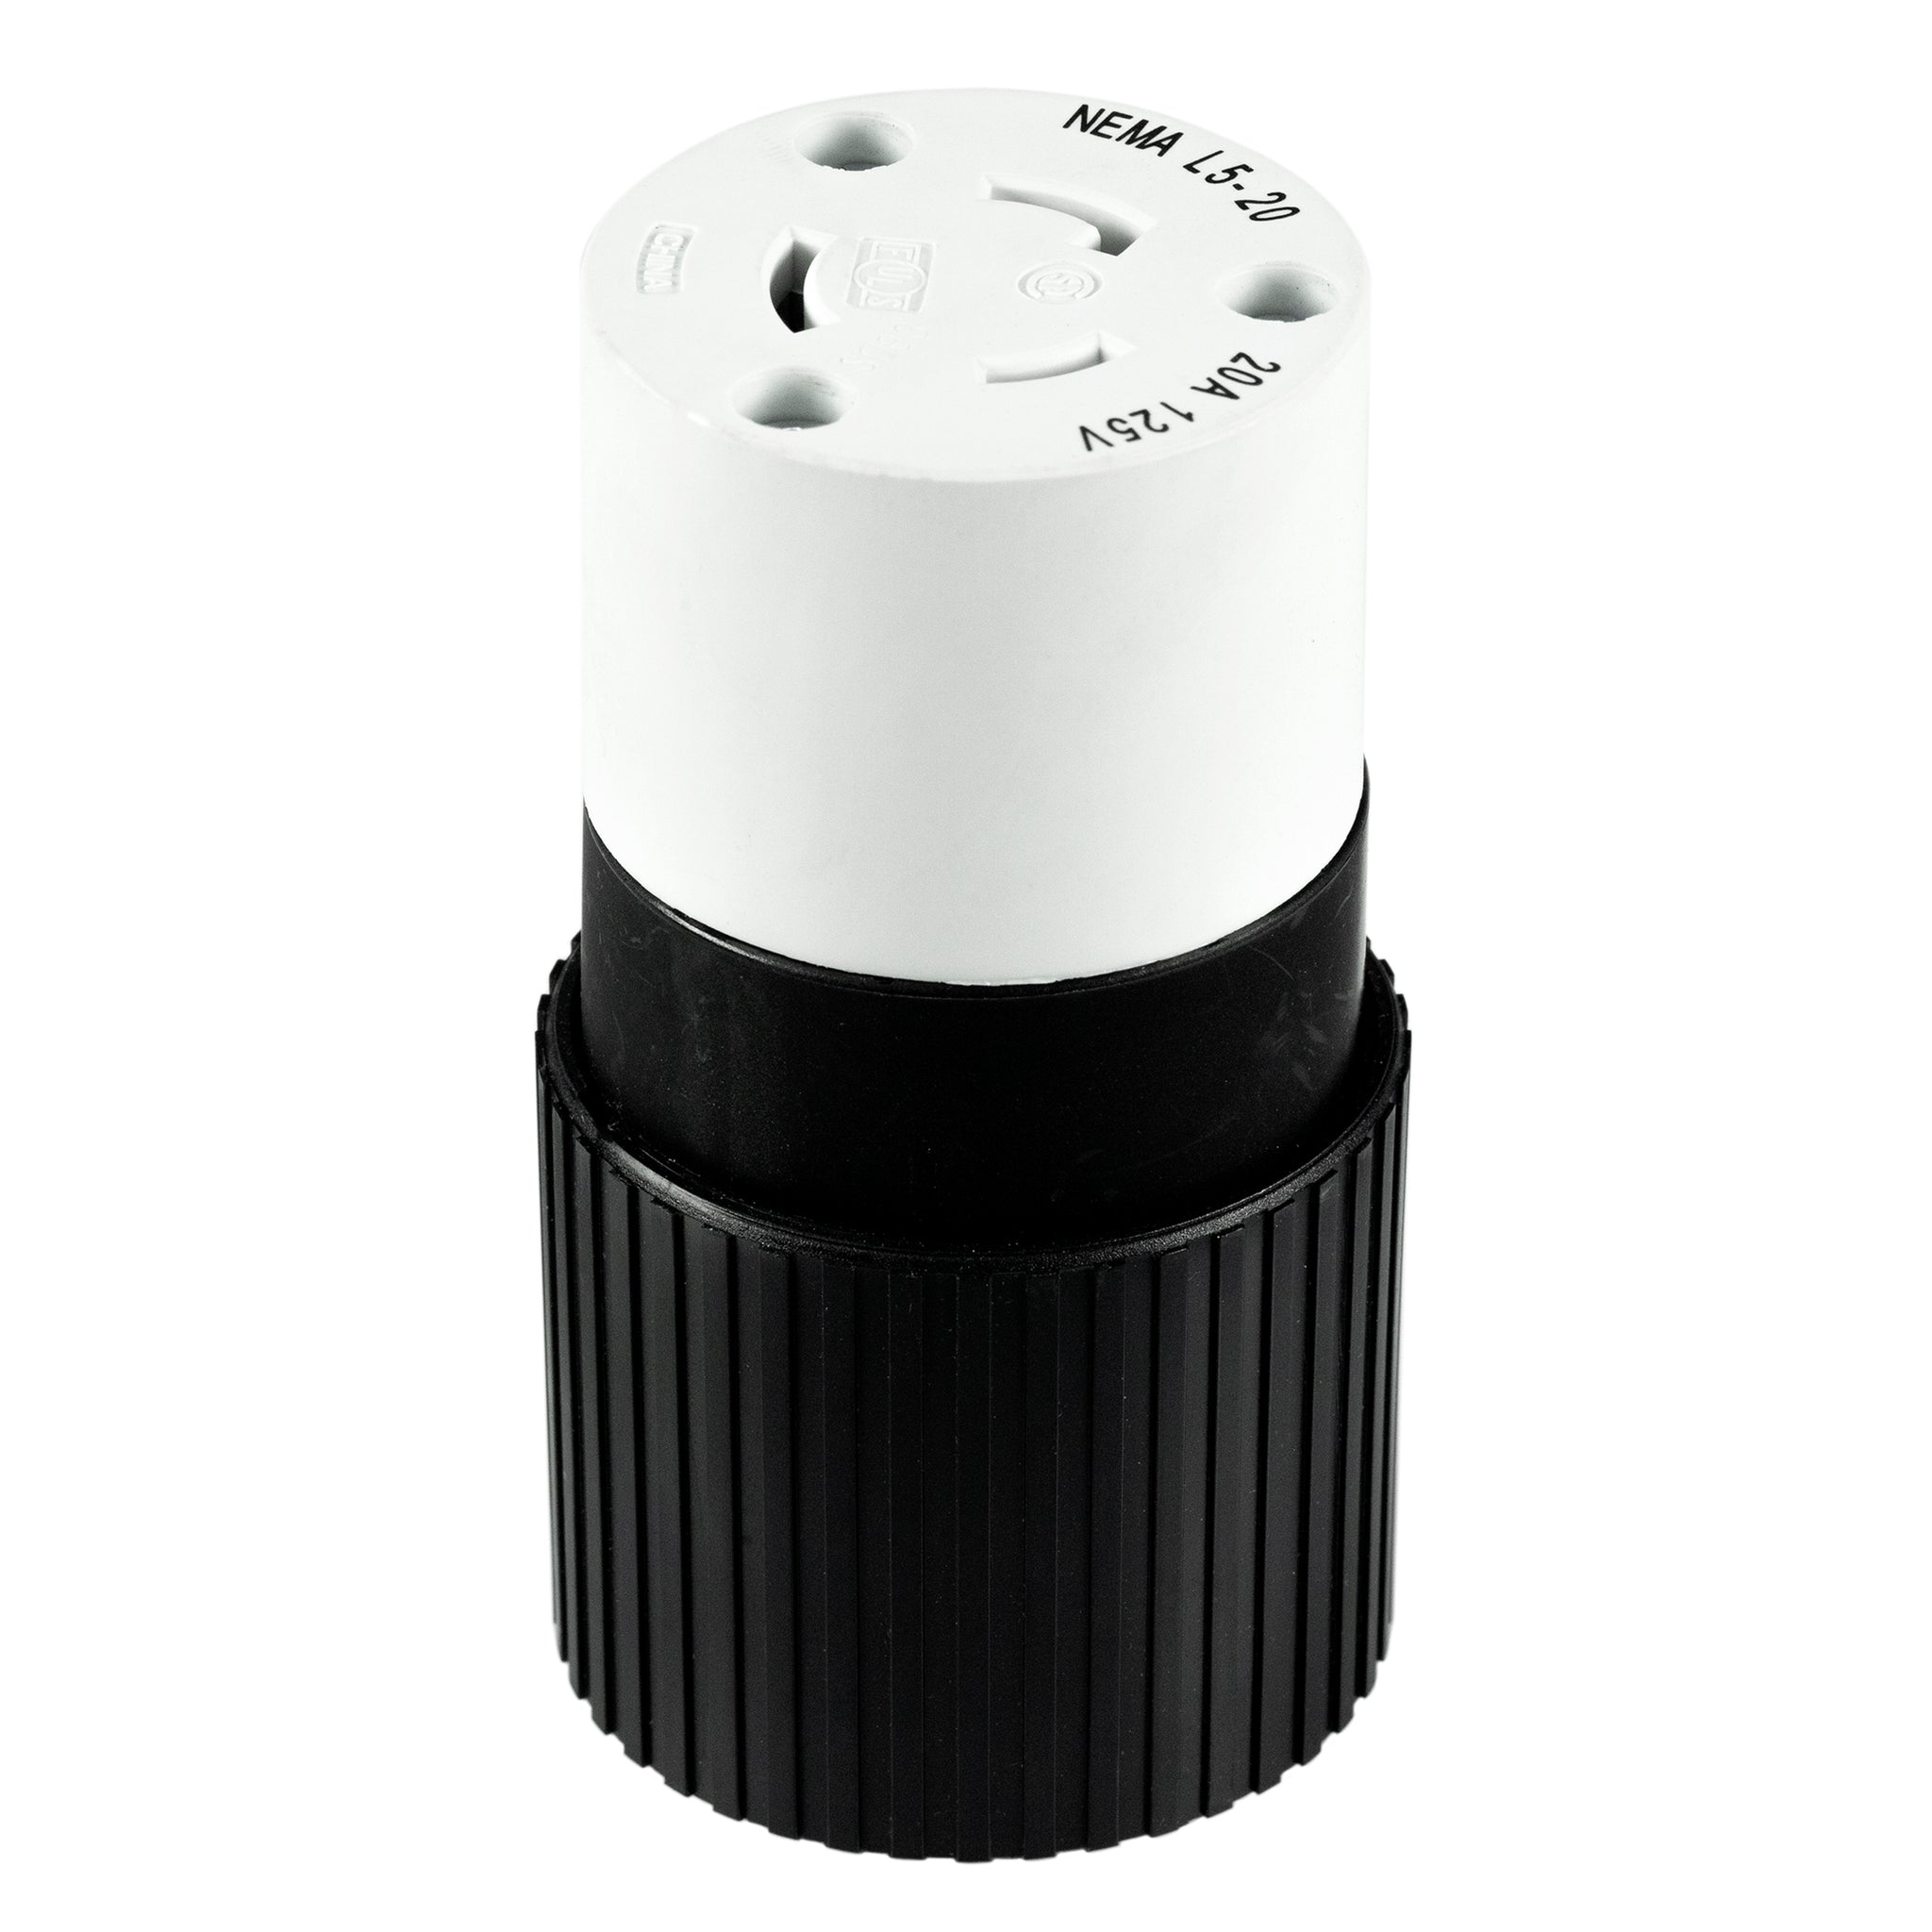 20A, 125VAC, 2 Pole 3 Wire Locking Connector